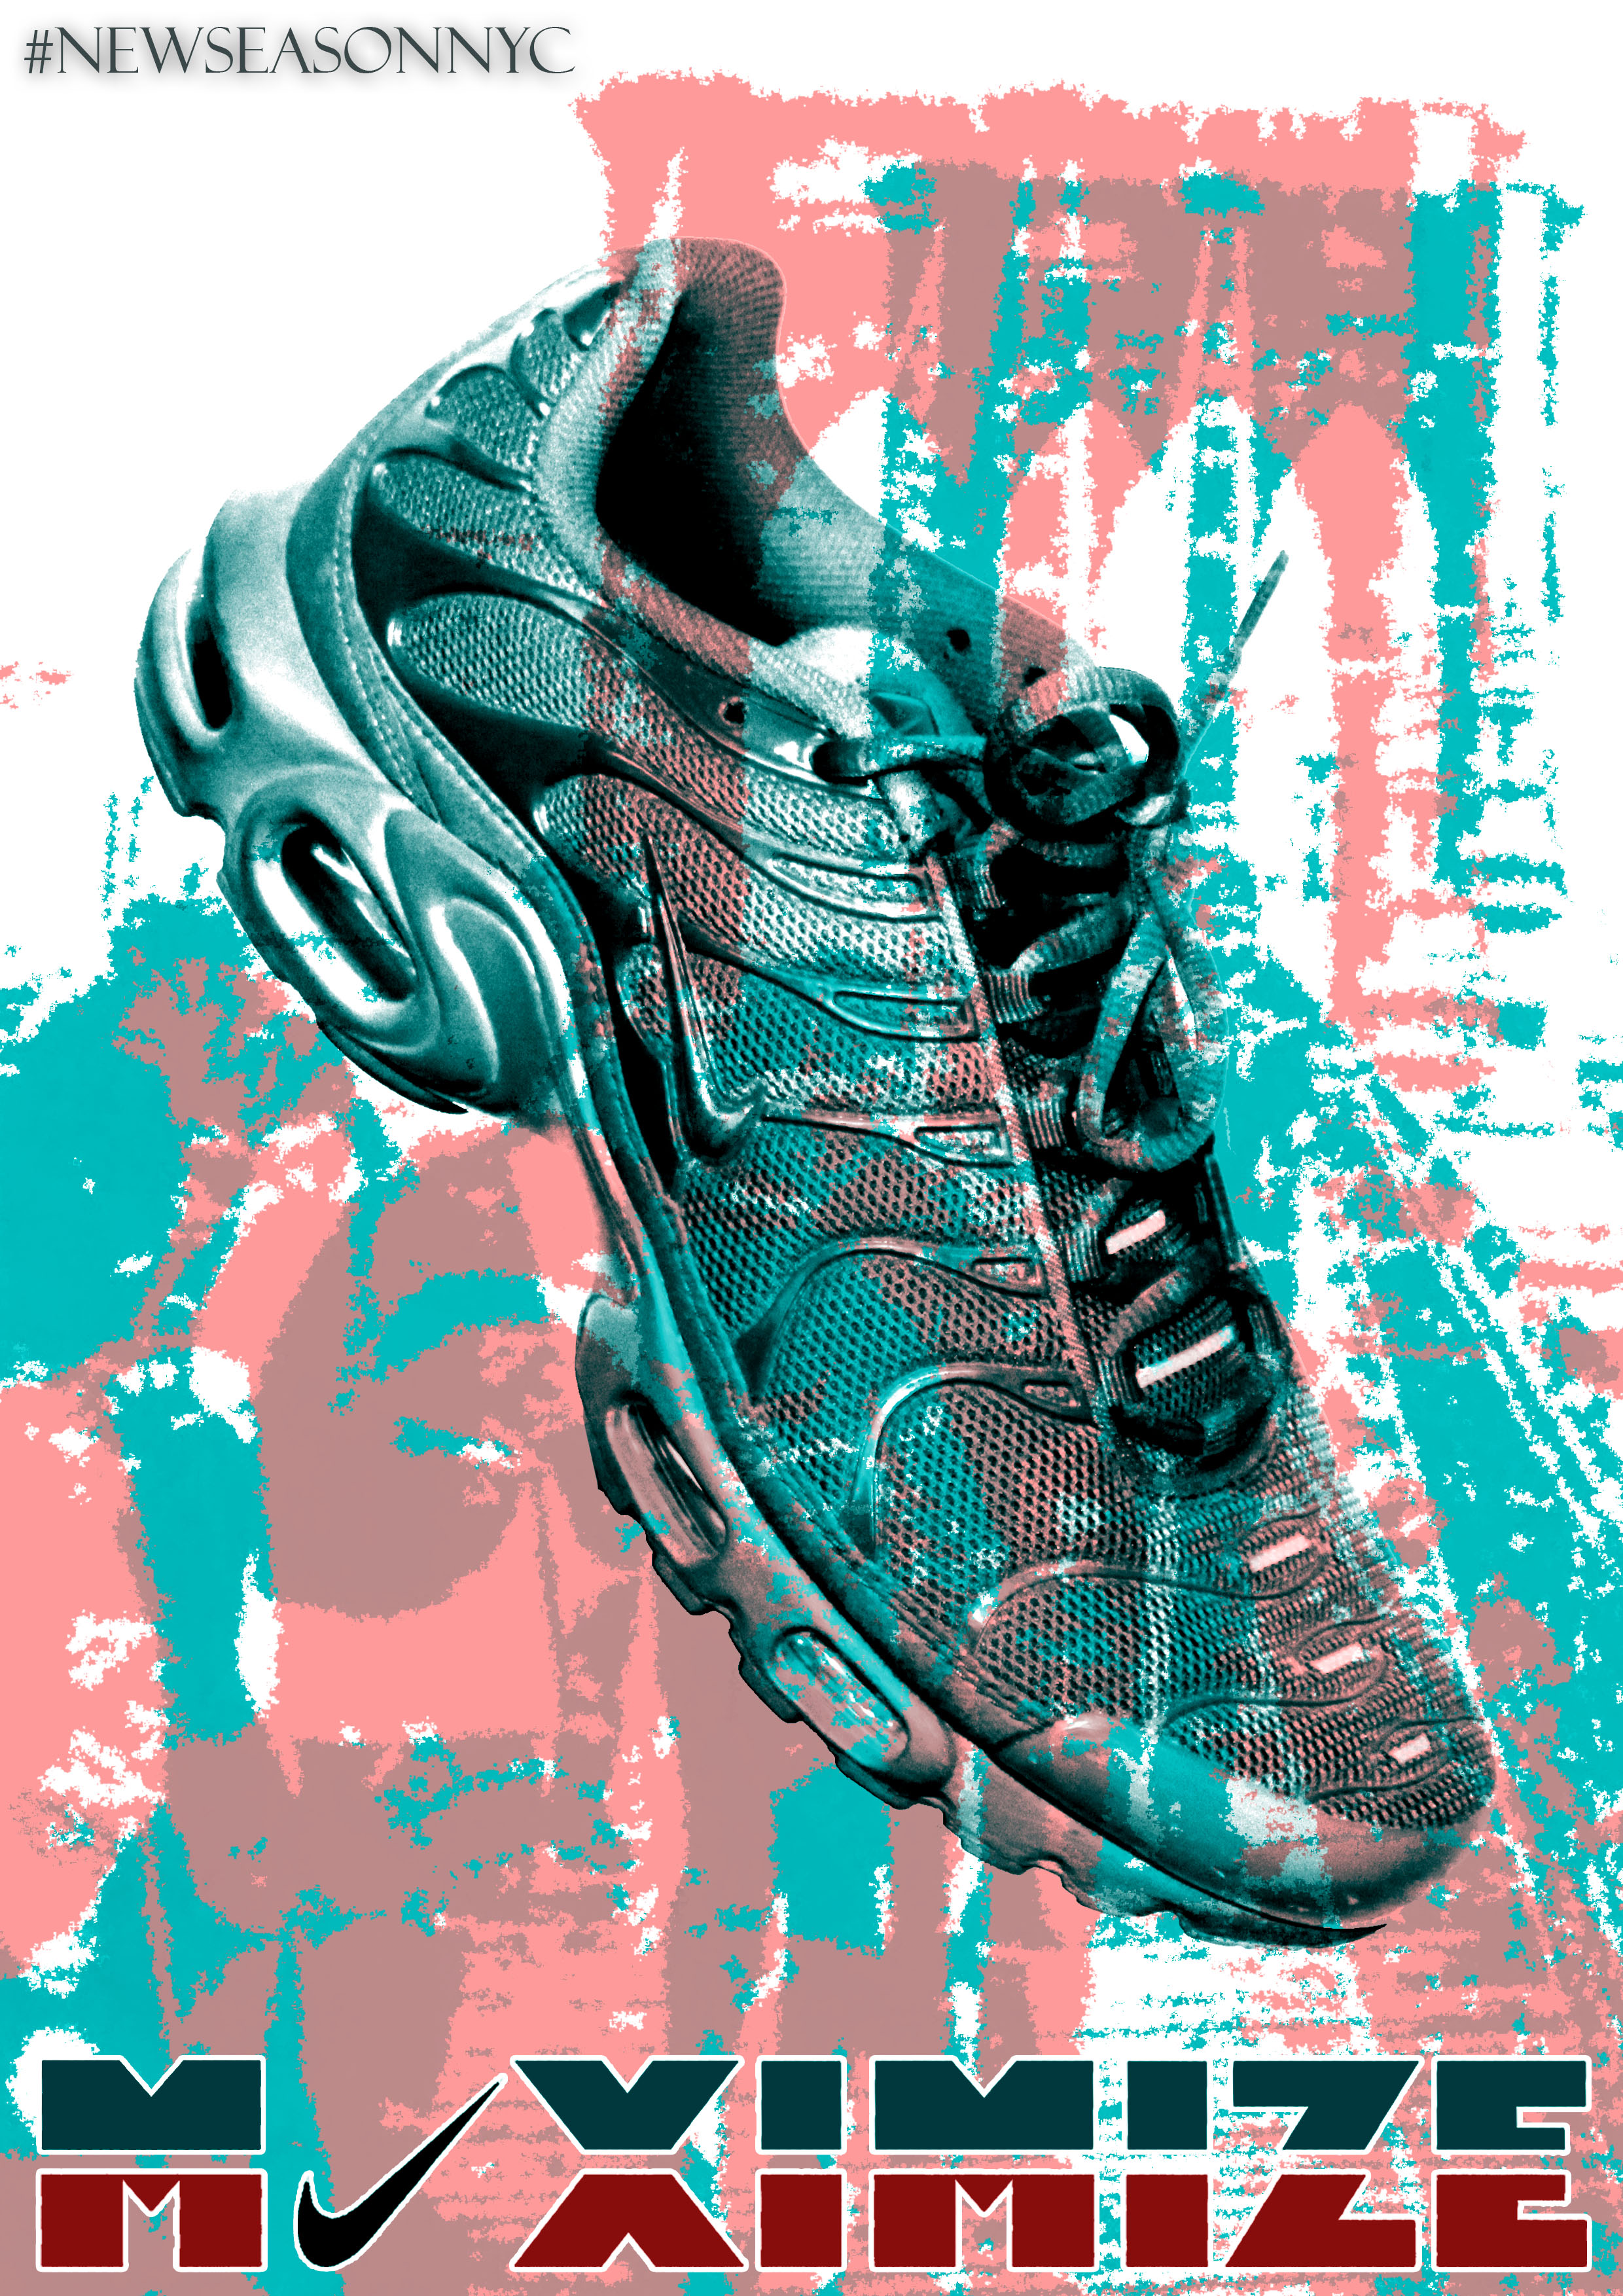 bf4a973f9fa238 Nike Inspired Poster Design | Amy Winson